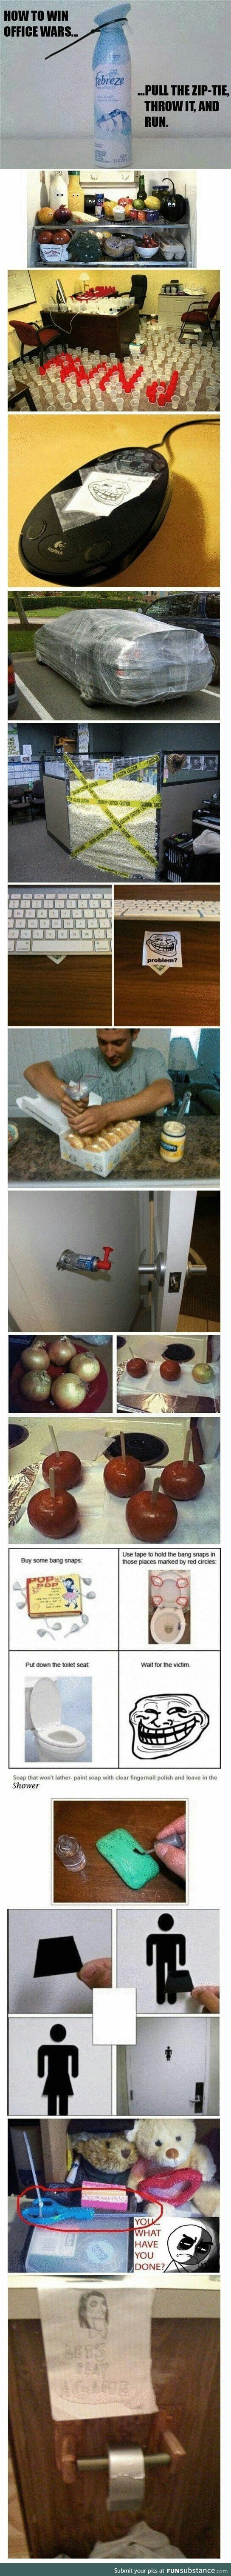 Omg so funny. Now I have some good prank ideas....